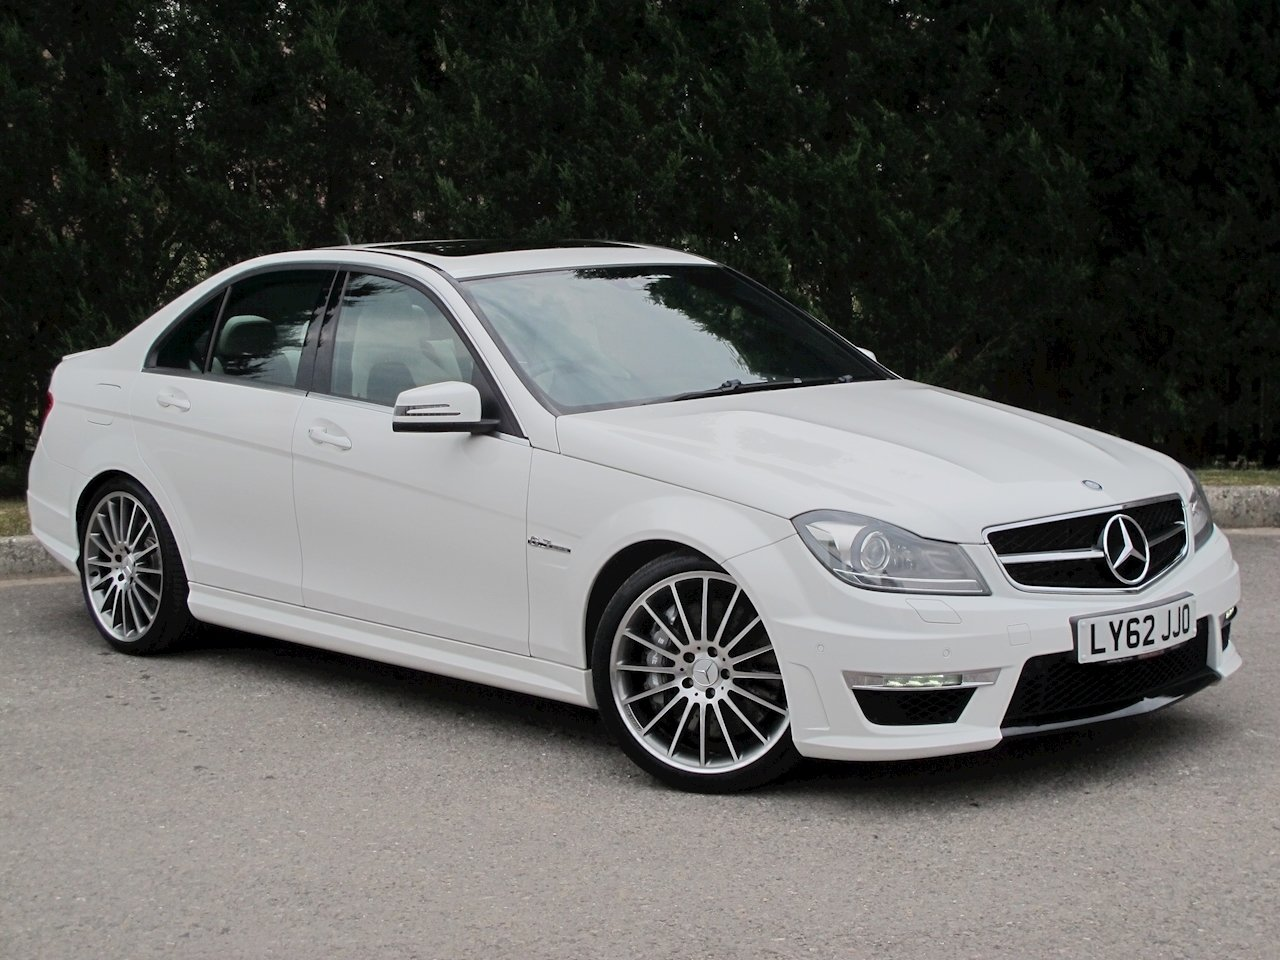 2012 Mercedes C63 AMG Saloon For Sale (picture 1 of 6)